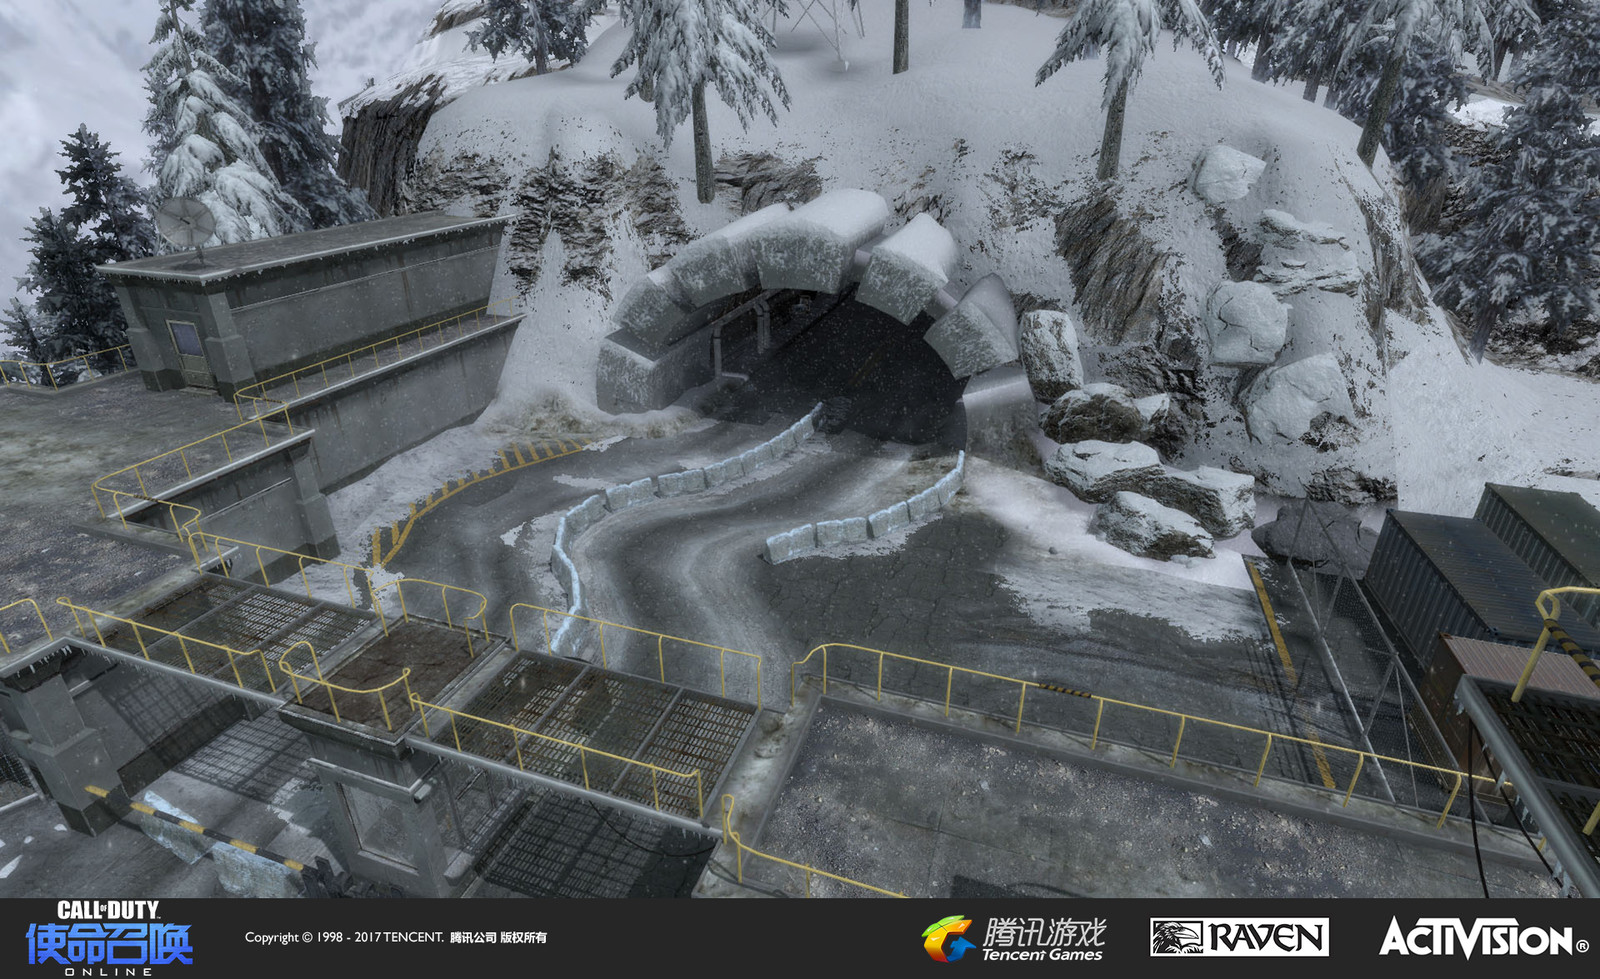 Summit: This is a multiplayer map re-created from Black Ops. I recreated the end section of the map and themed it as a security checkpoint/entrance. I was resonsible for geo, terrain, and texturing in this area. Pat Williams created the buildings.